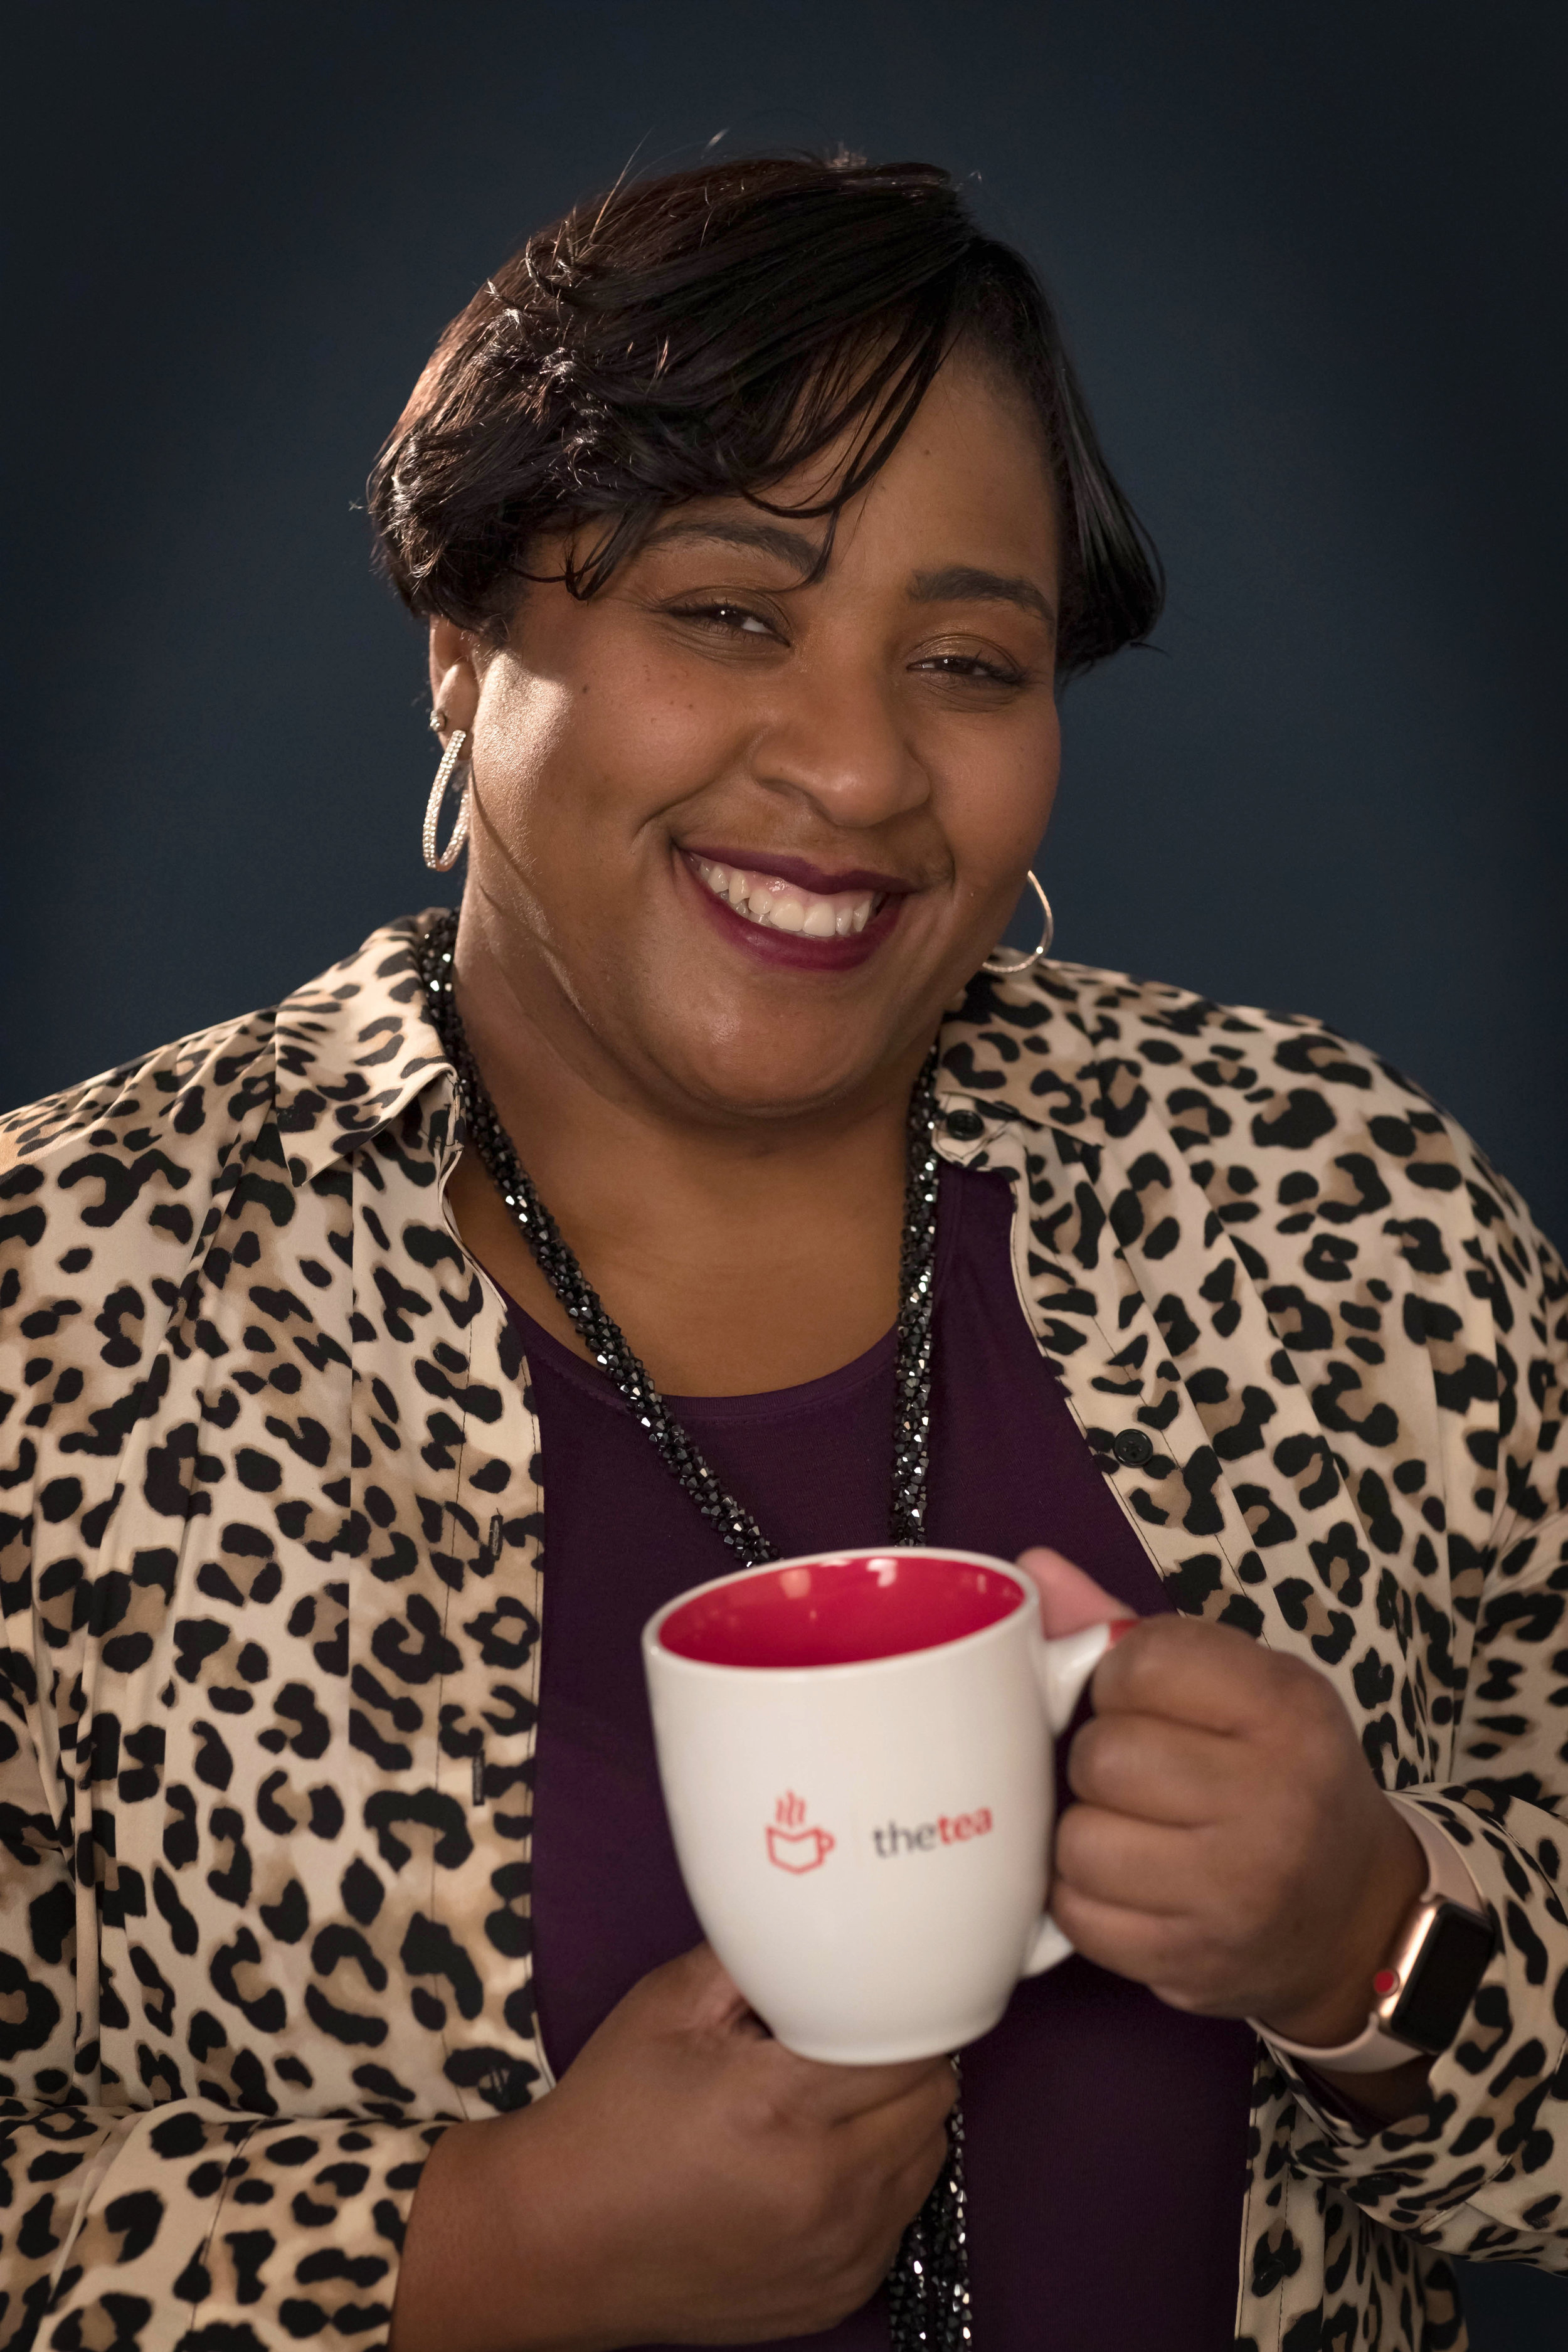 """Deborah franklin    deborah is an educator, author, motivational speaker, minister, radio host at conversations with deborah and producer of the tea. a native of houston she now lives in washington, dc where she teaches in a dc public school and is an executive director of a non-profit.     """"I like being on The Tea because it allows me to chat with other women and the audience about books on multiple levels.""""      twitter.com/DeborahConvo       facebook.com/conversationsdeborahfranklin       instagram.com/conversationsdeborahfranklin"""